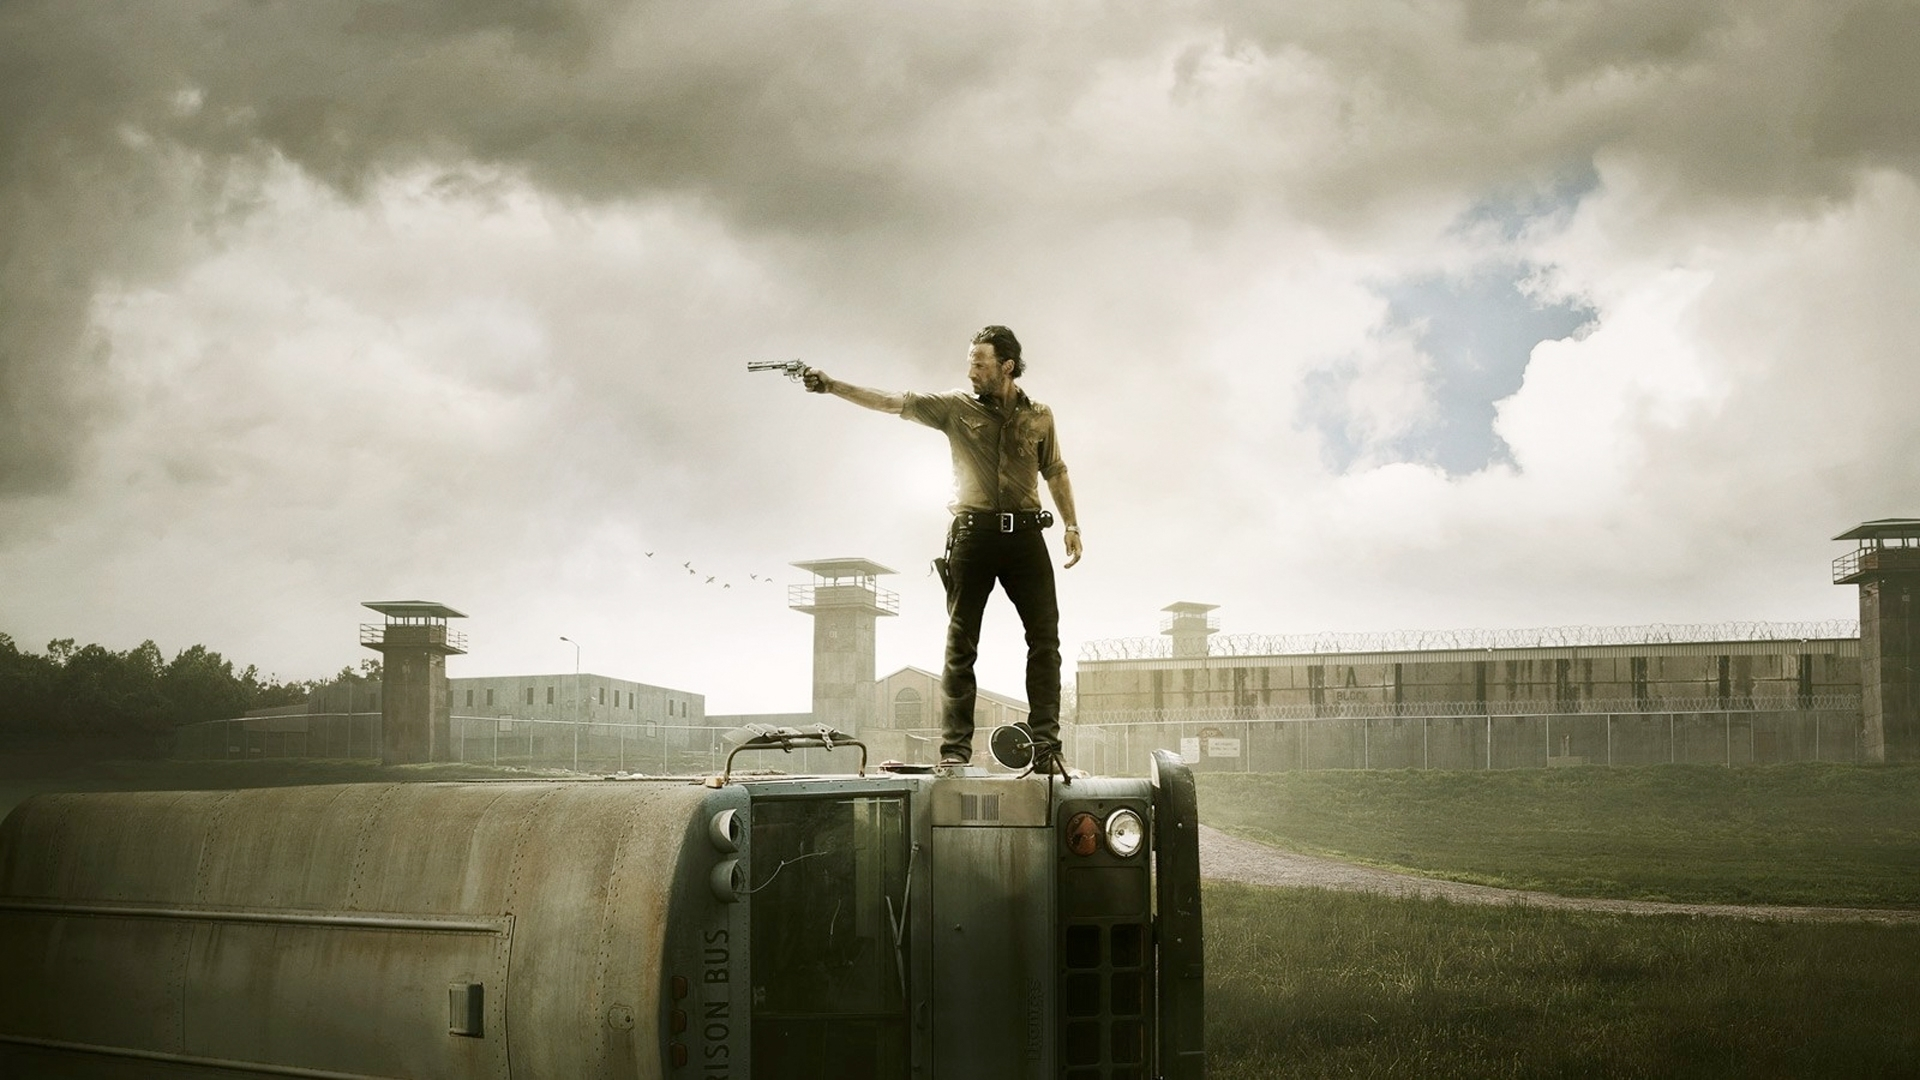 the walking dead full hd fond d'écran and arrière-plan | 1920x1080